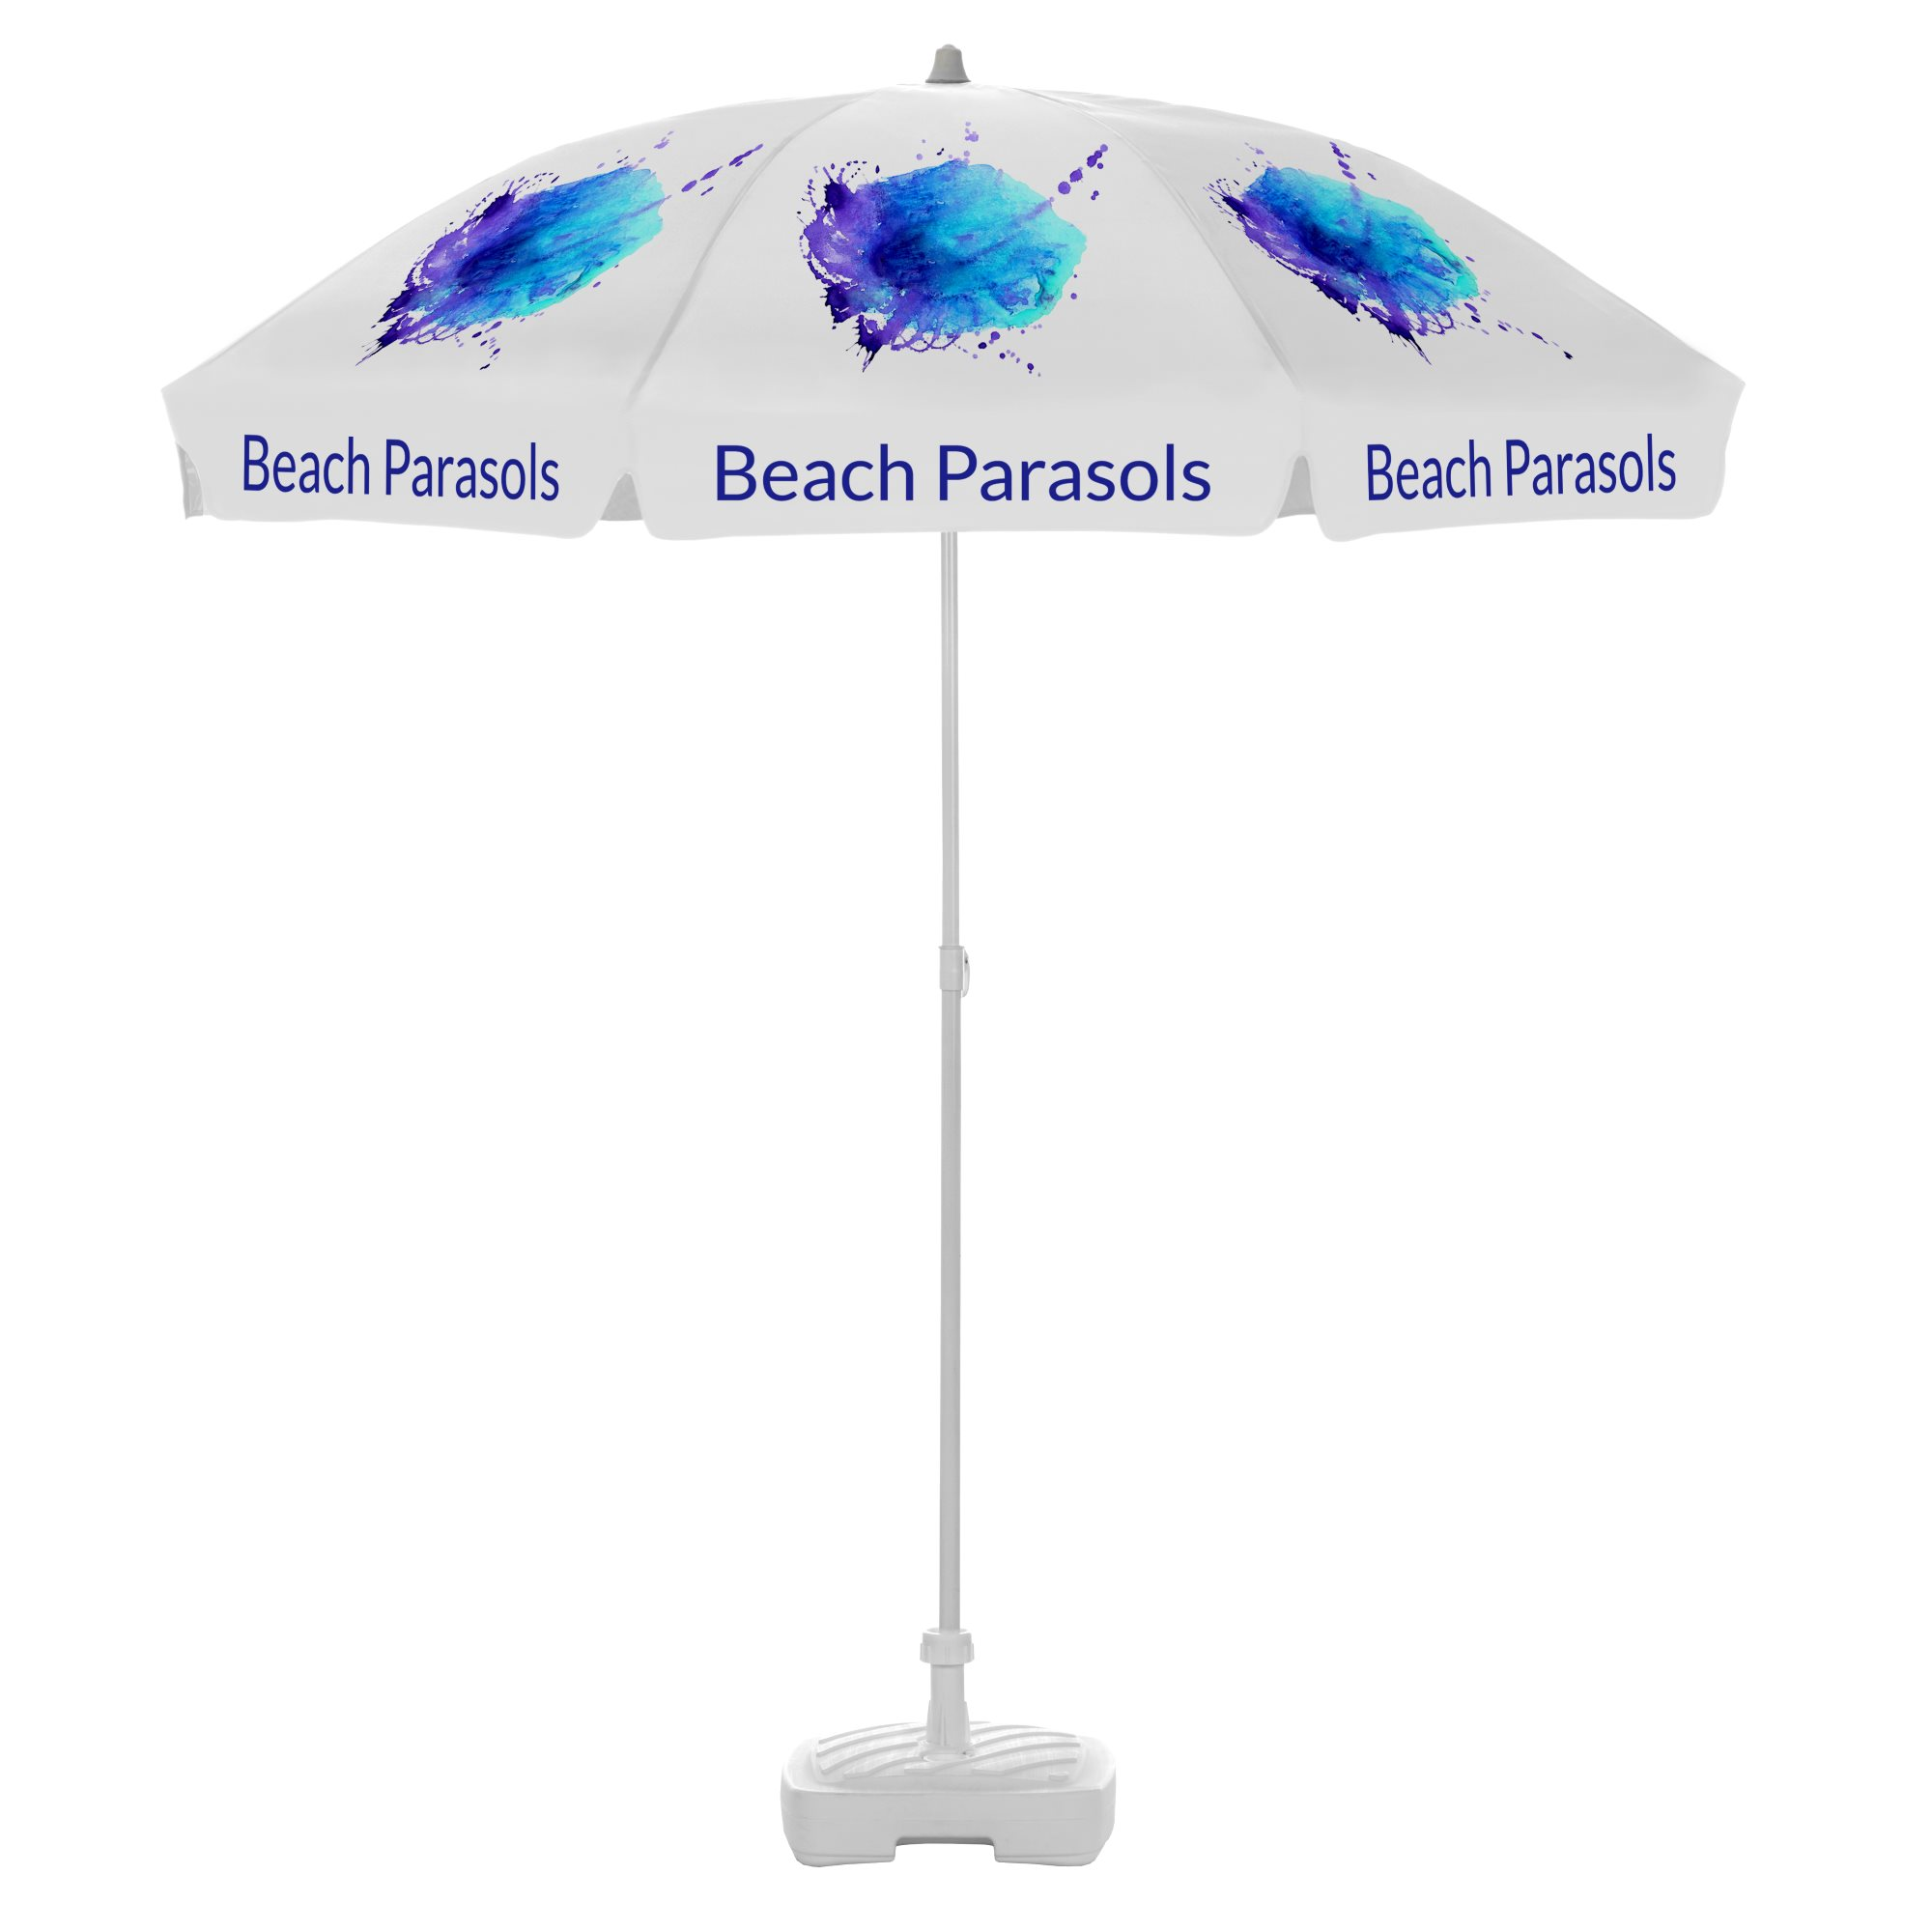 4. Beach Parasols Octagonal 2m with fairing